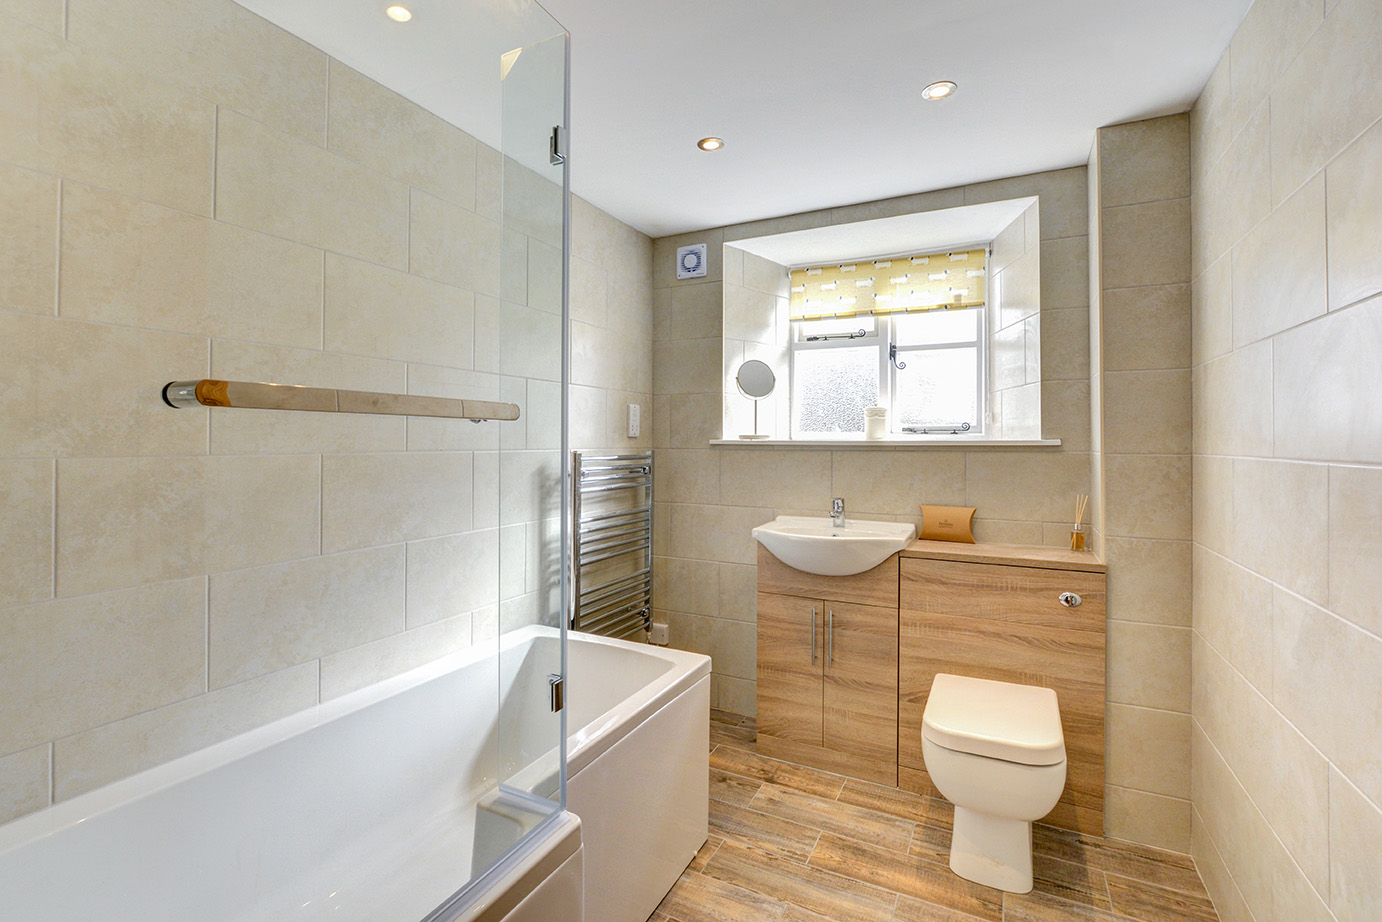 The bathroom of Butterwell luxury self catering converted barn holiday cottage at Penrose Burden in North Cornwall 01.jpg